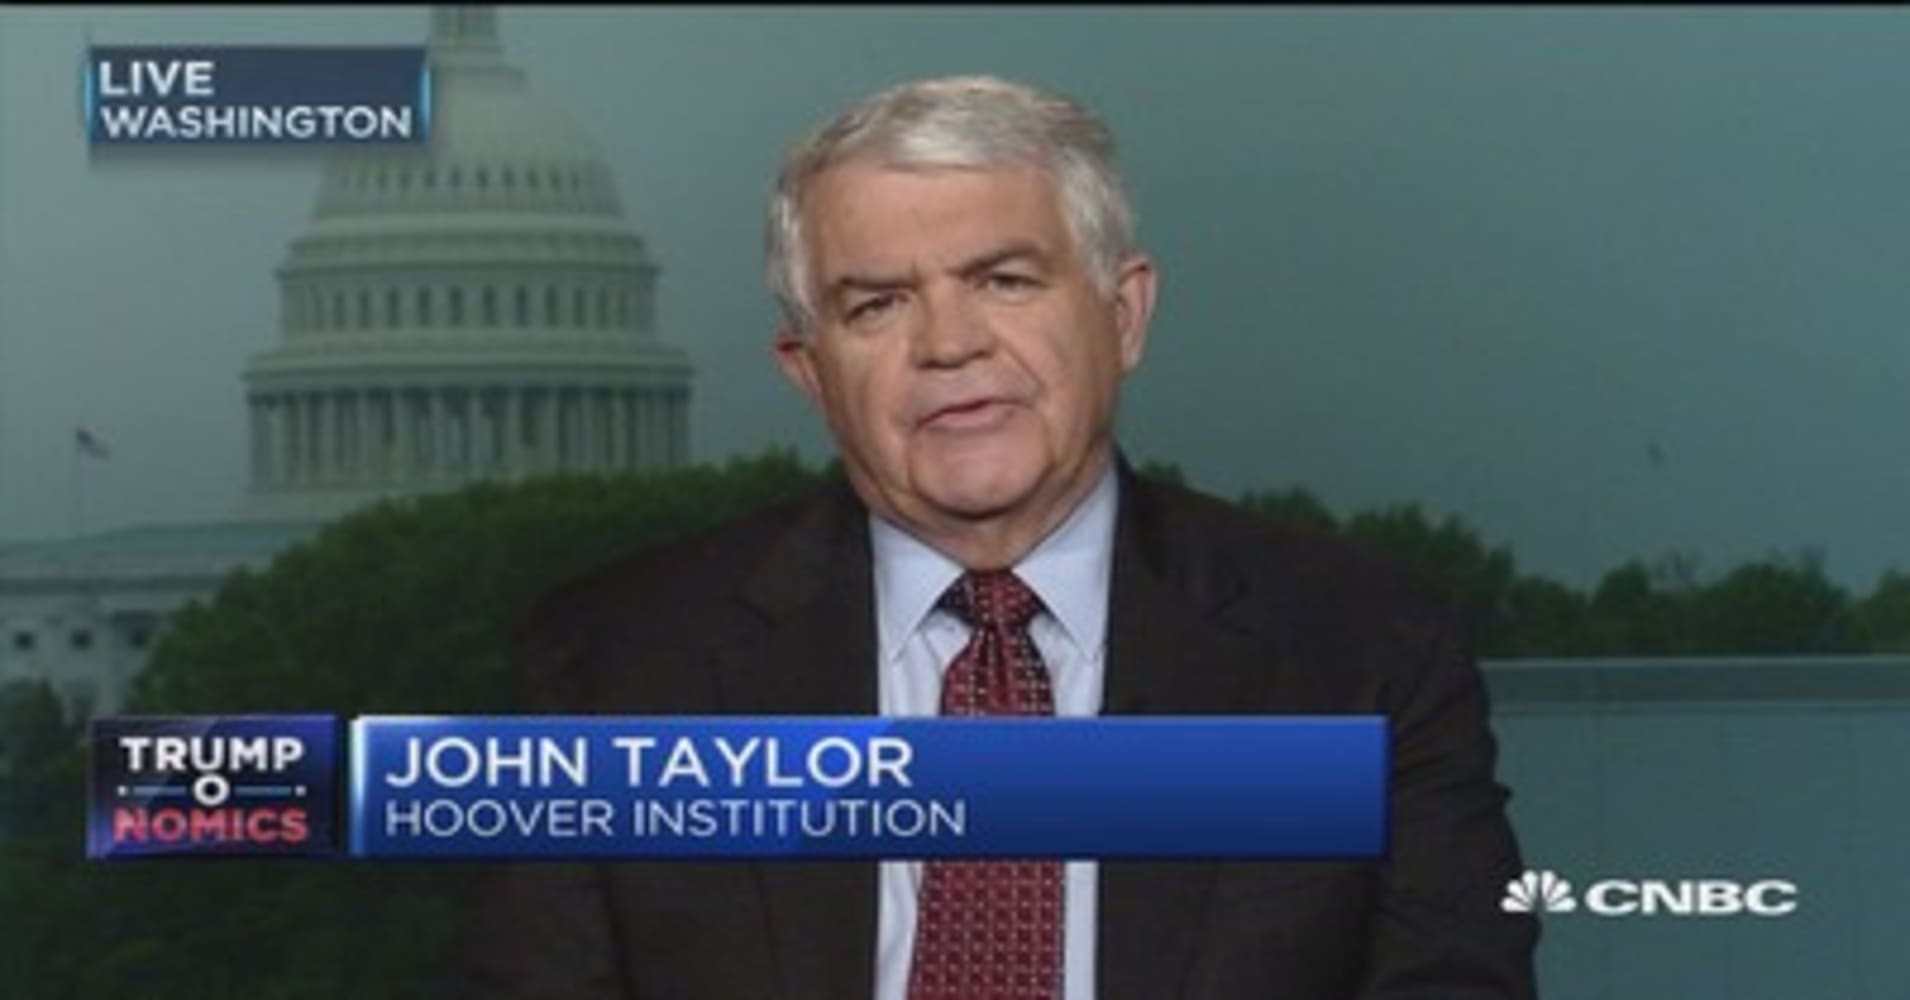 Full interview with former Treasury Undersecretary John Taylor on the economy, Federal Reserve